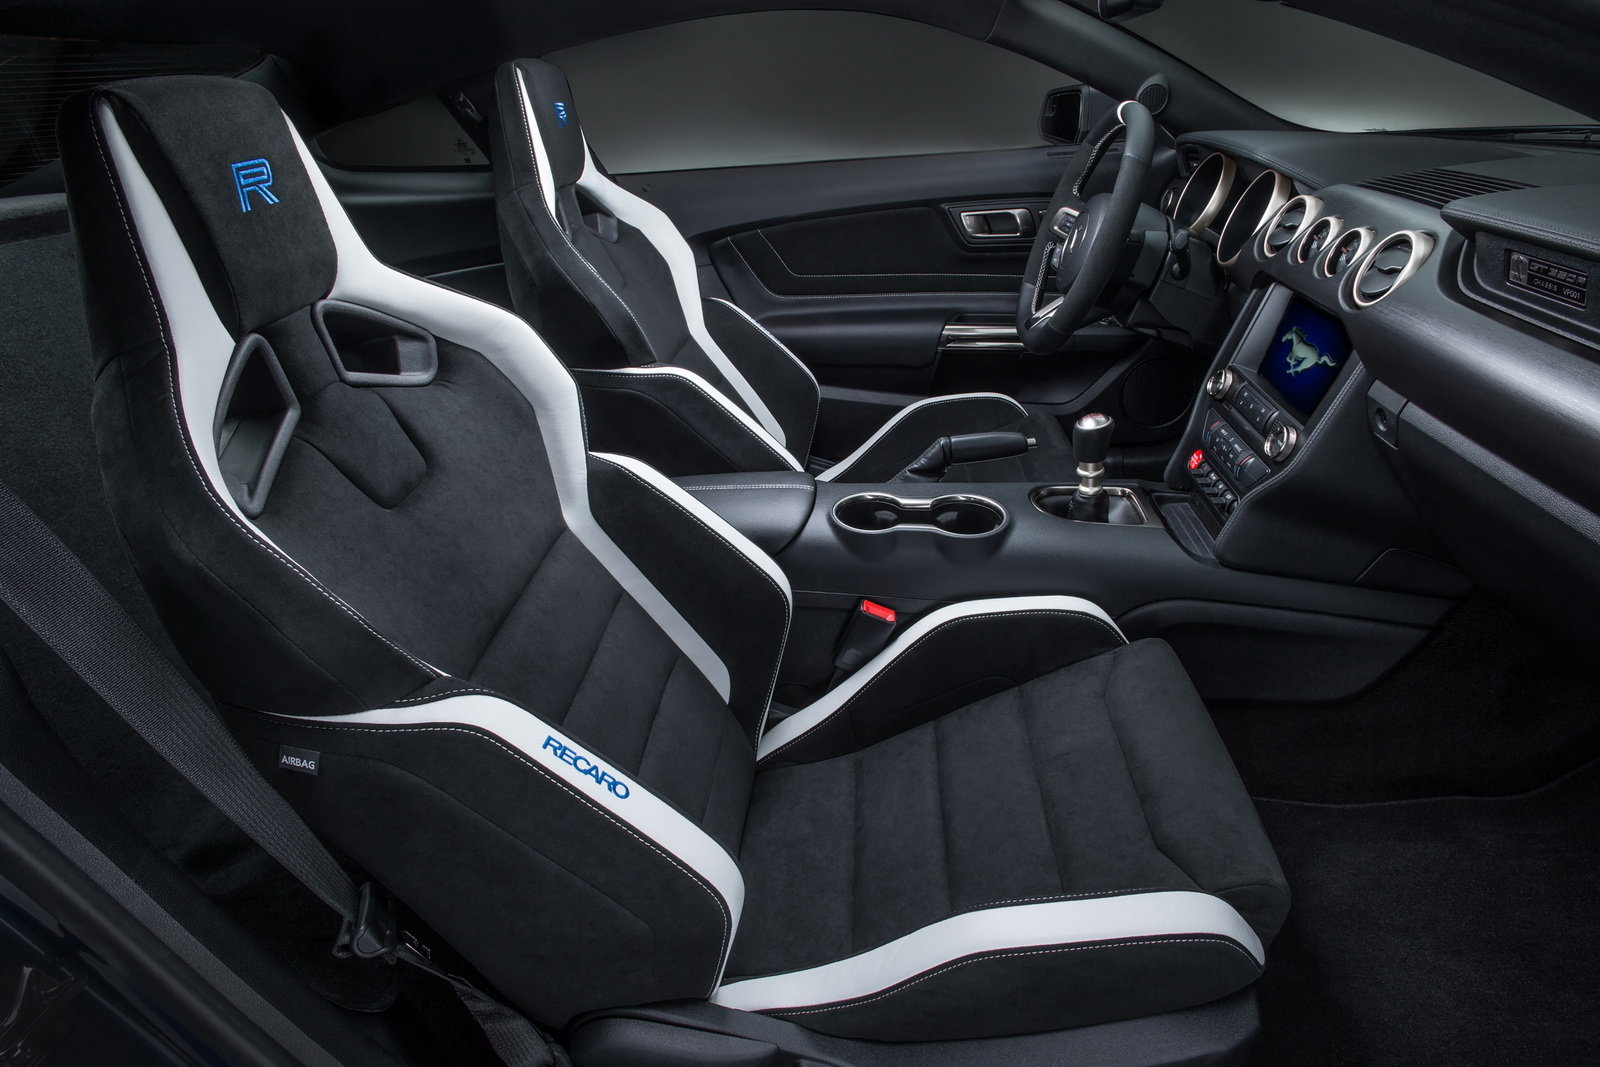 2016 Ford Mustang Shelby Gt350r Front Interior (Photo 30 of 47)